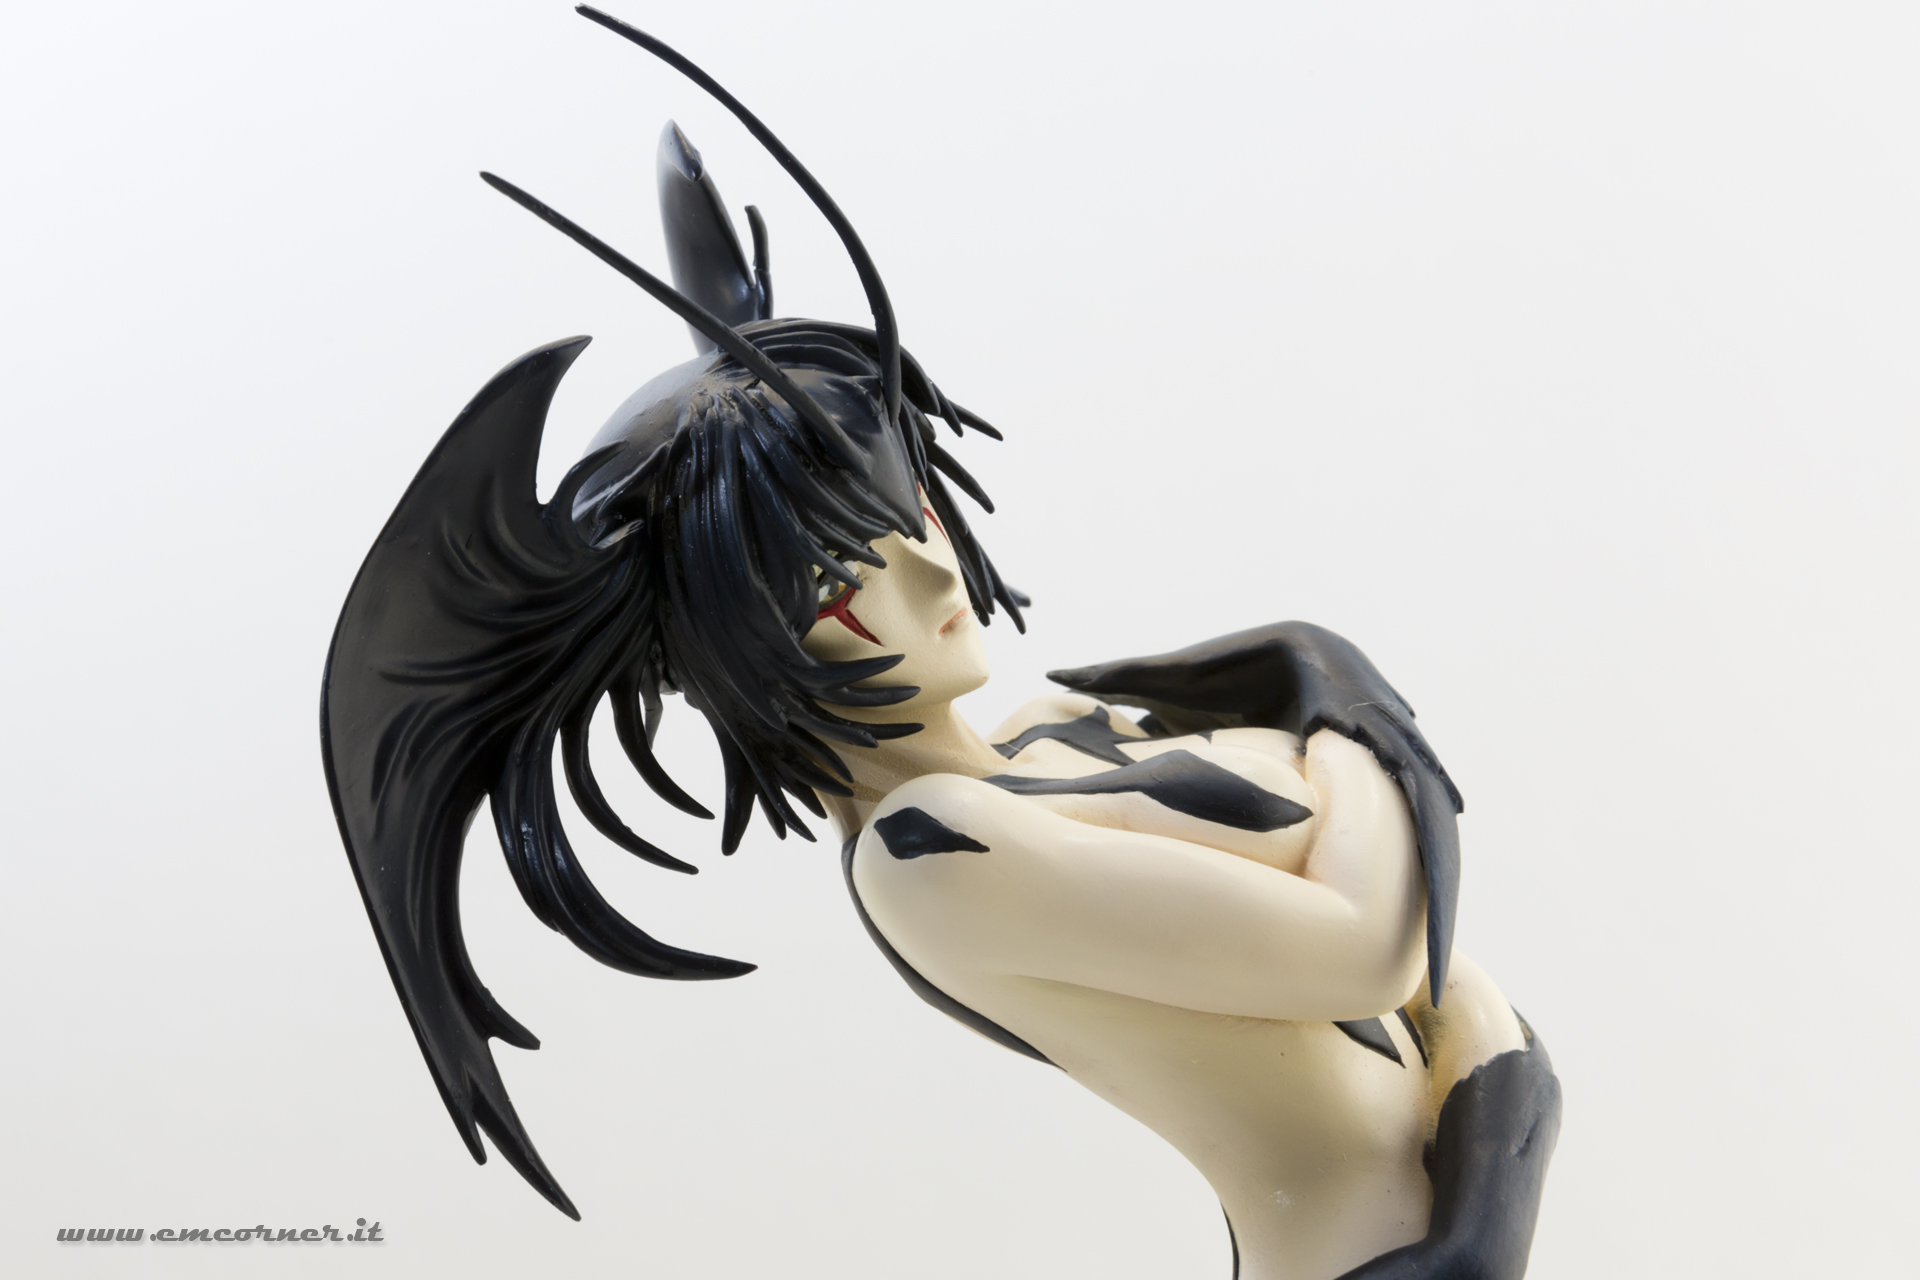 new-line-devilman-devil-lady-pre-painted-coldcast-8_-emcorner-it_